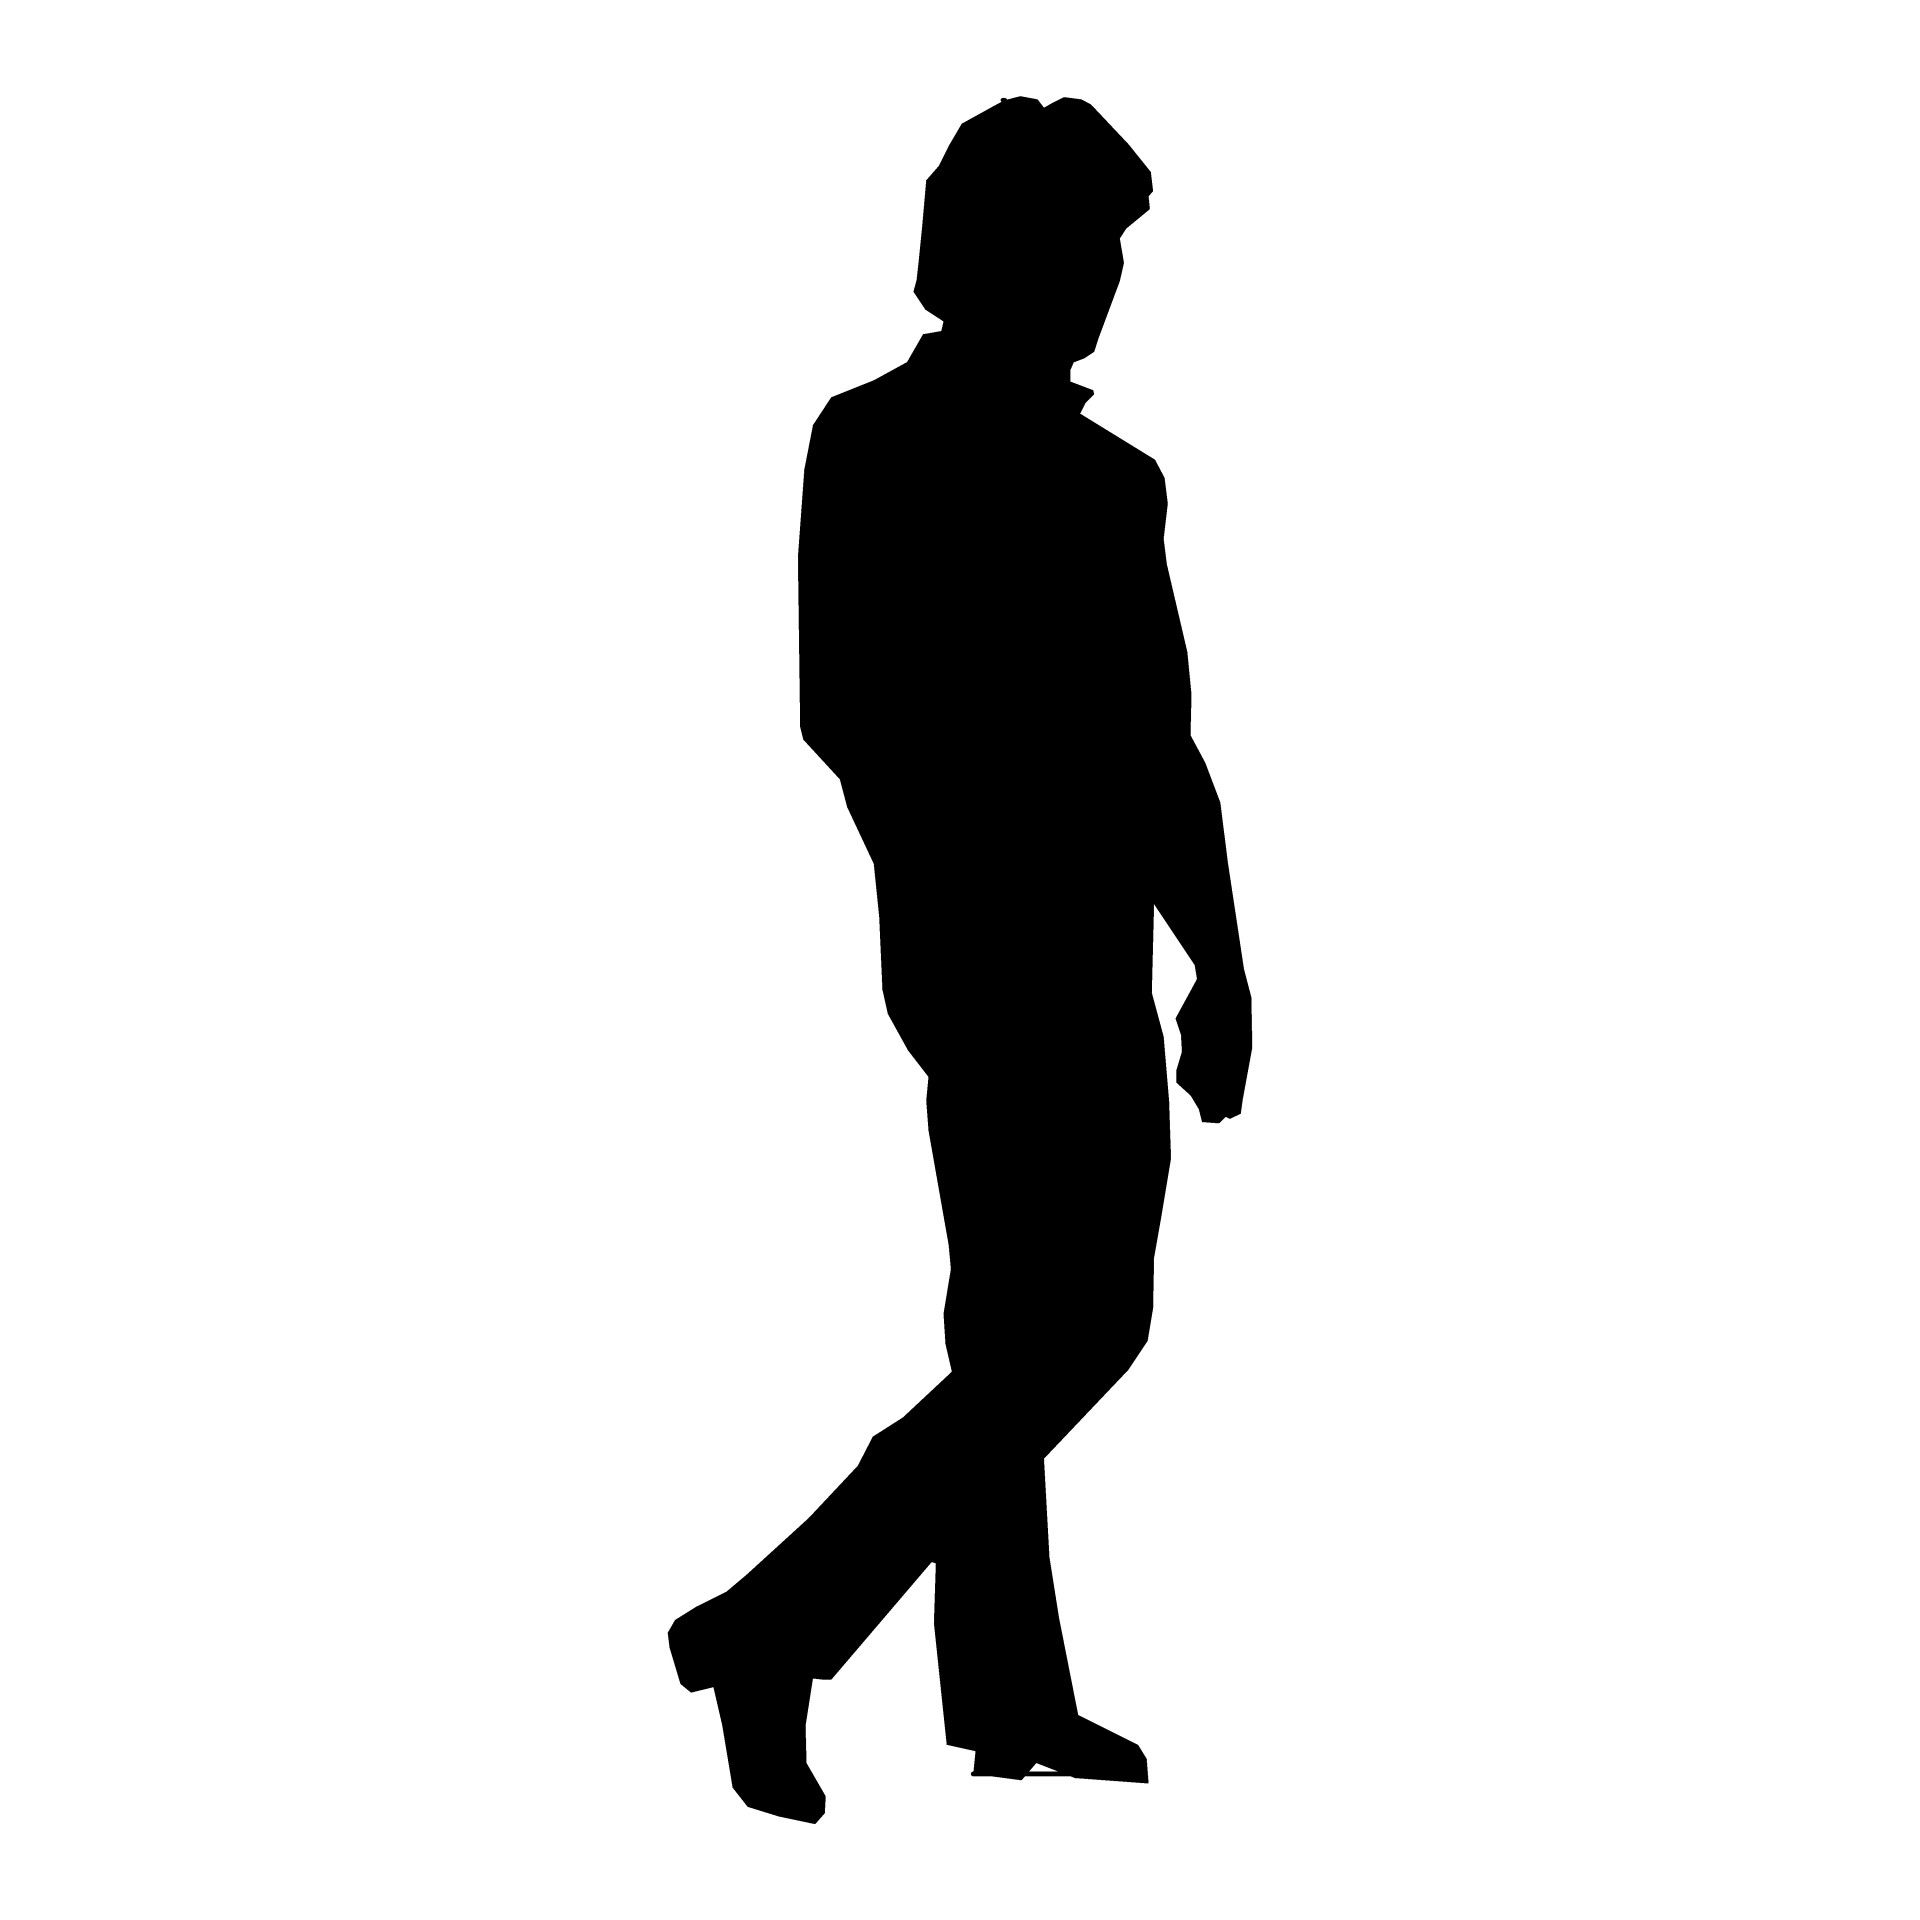 Silhouette Paintings Of People Silhouette Man Walking People I 2019 Silhouette Clip